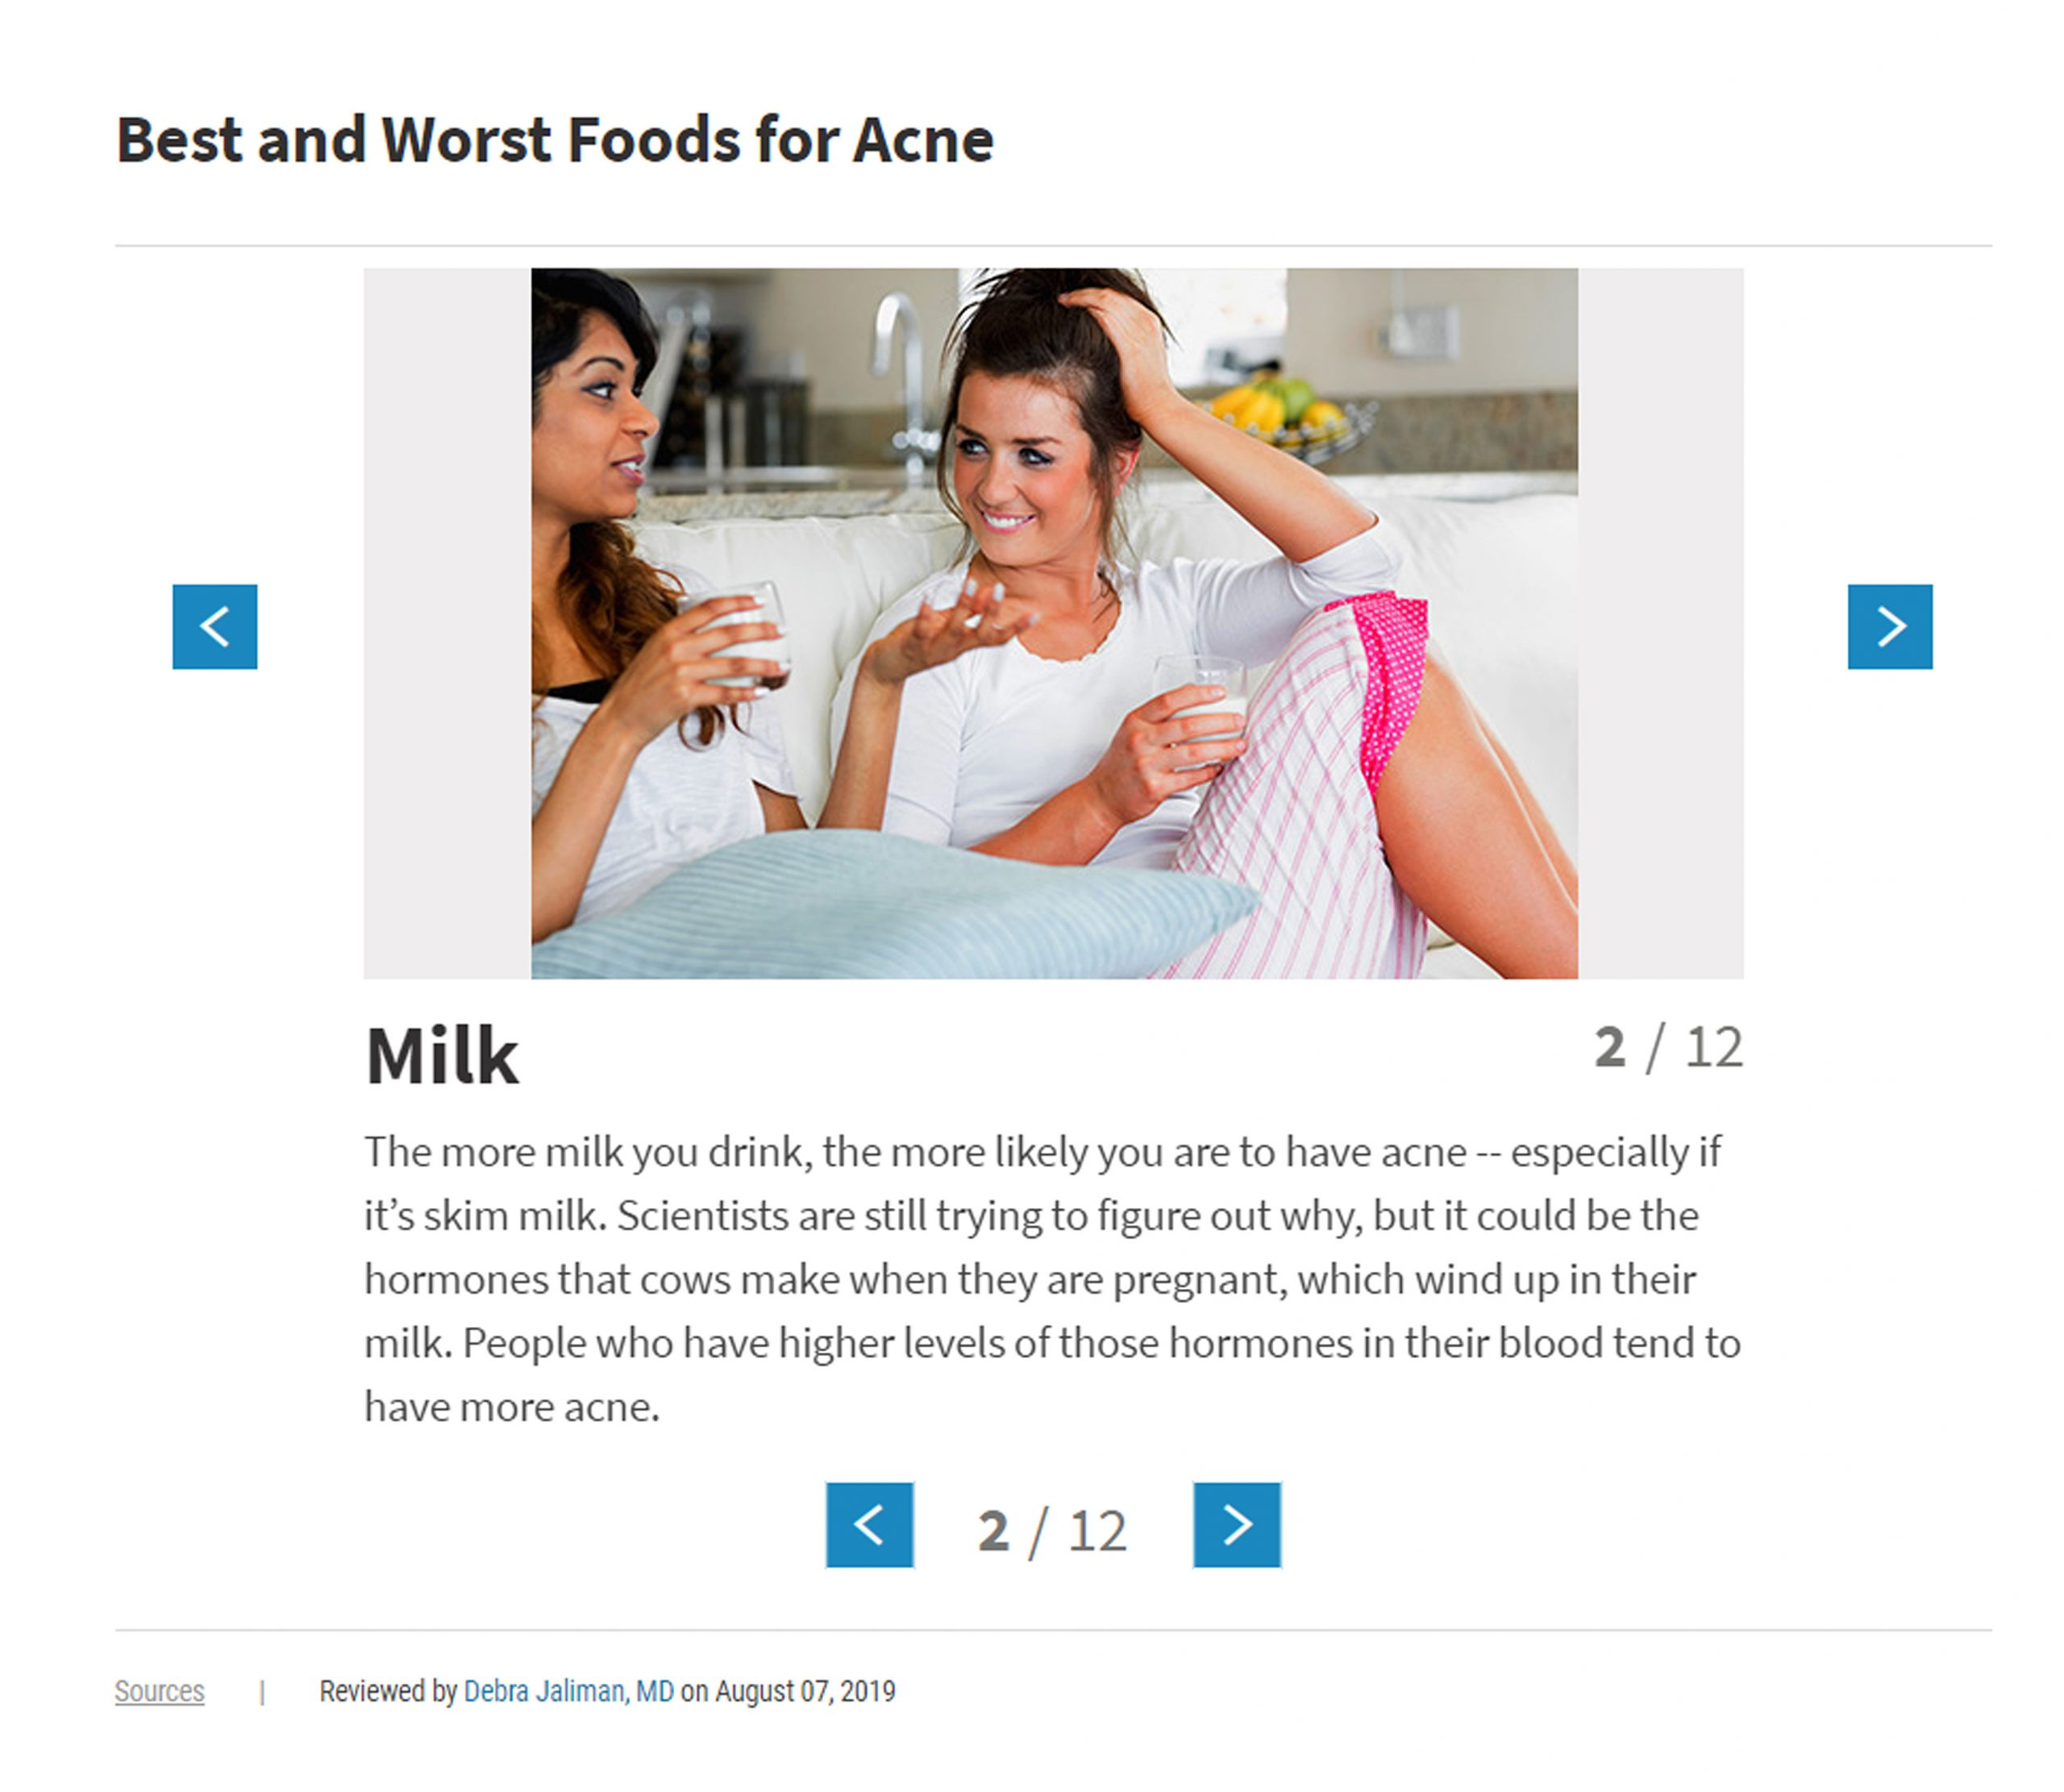 List of foods that cause acne. These are some of the best and worst foods for acne – as proven by science.